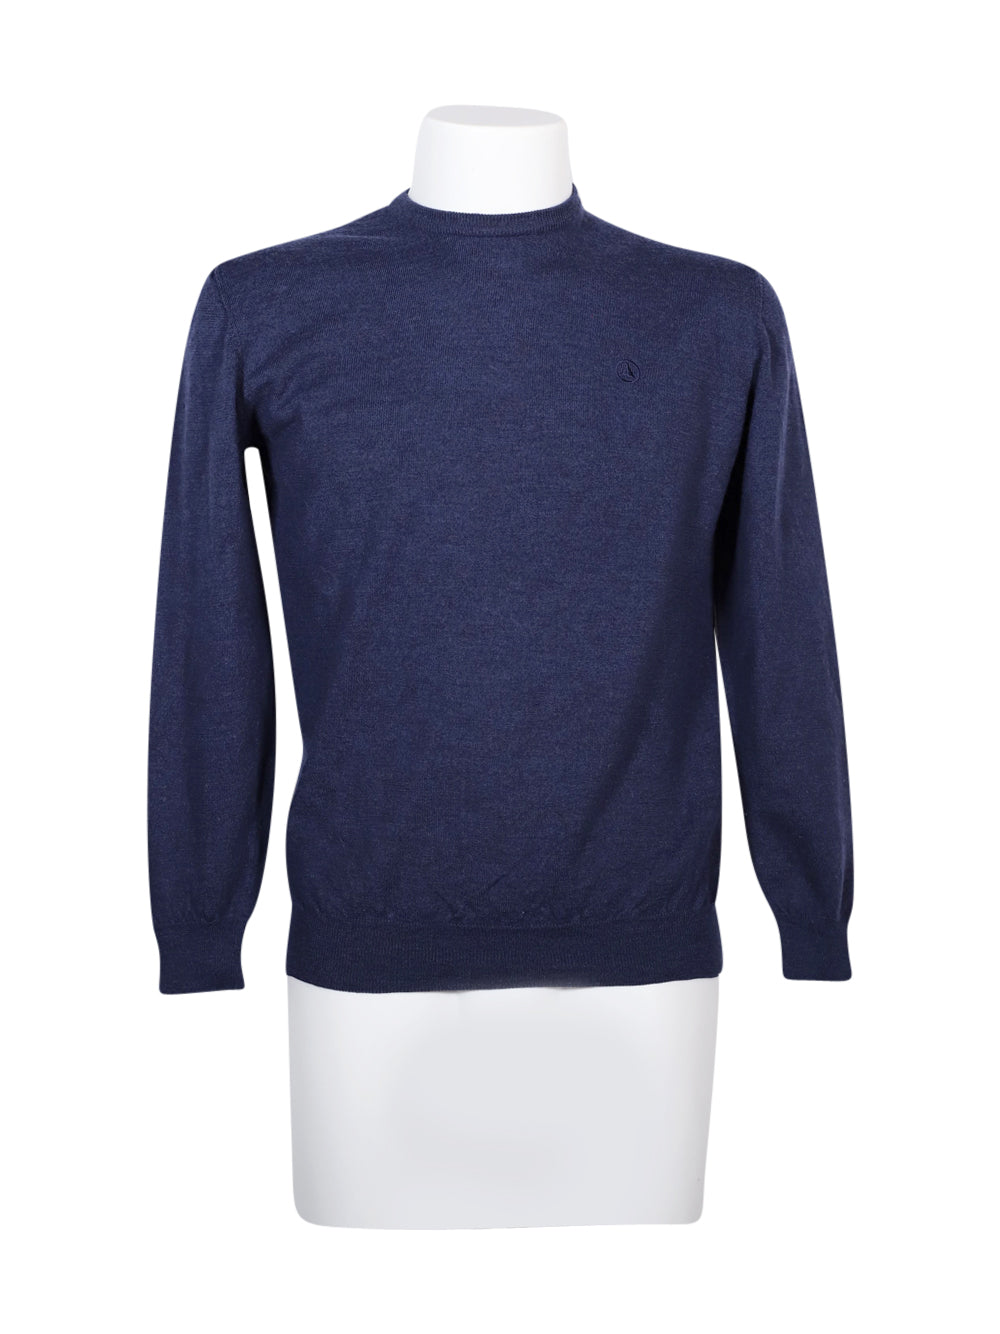 Front photo of Preloved Ivy Oxford Blue Man's sweater - size 40/L